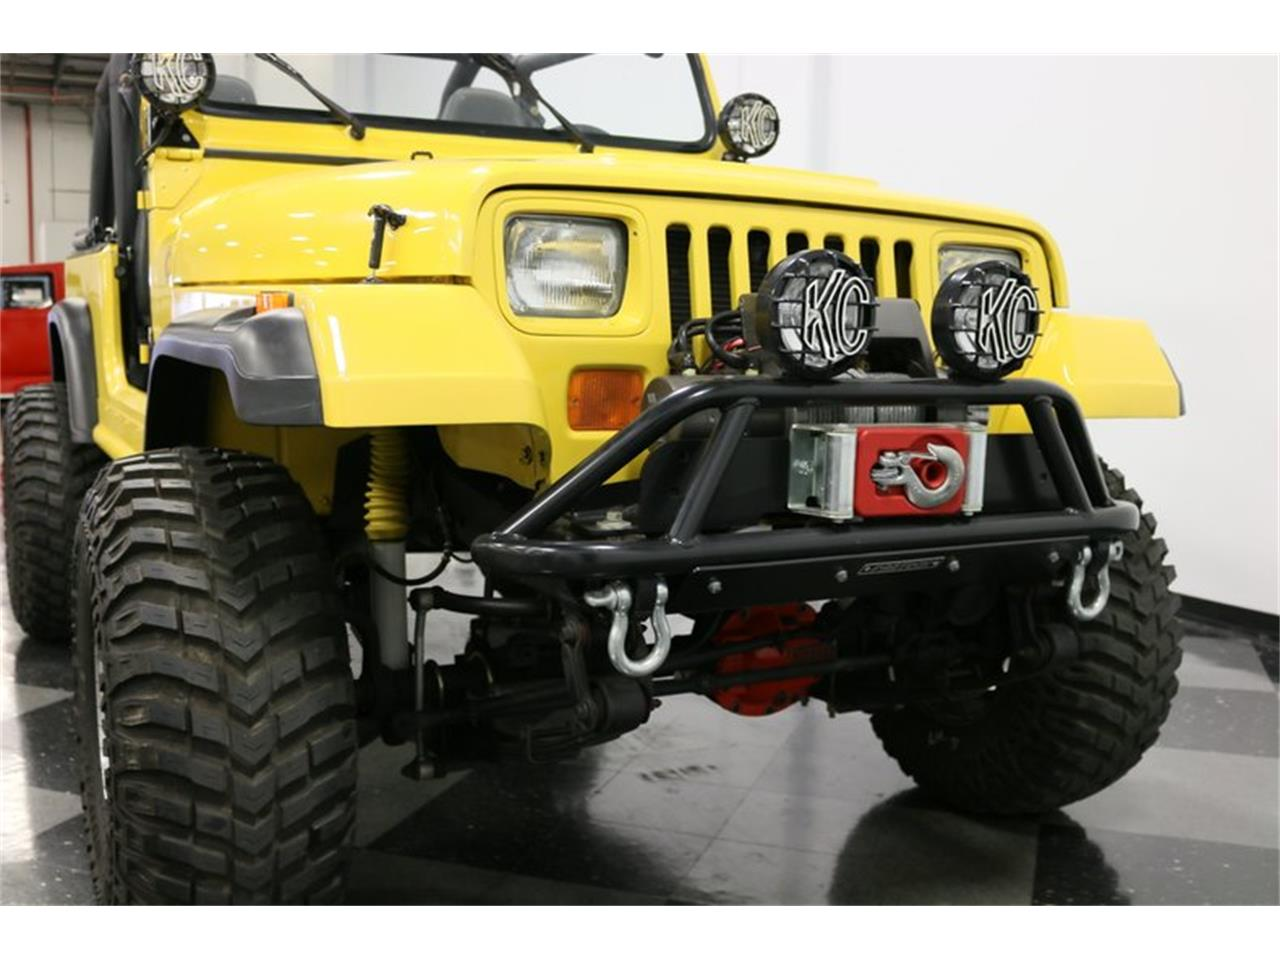 Large Picture of '93 Jeep Wrangler located in Texas - $25,995.00 Offered by Streetside Classics - Dallas / Fort Worth - P701